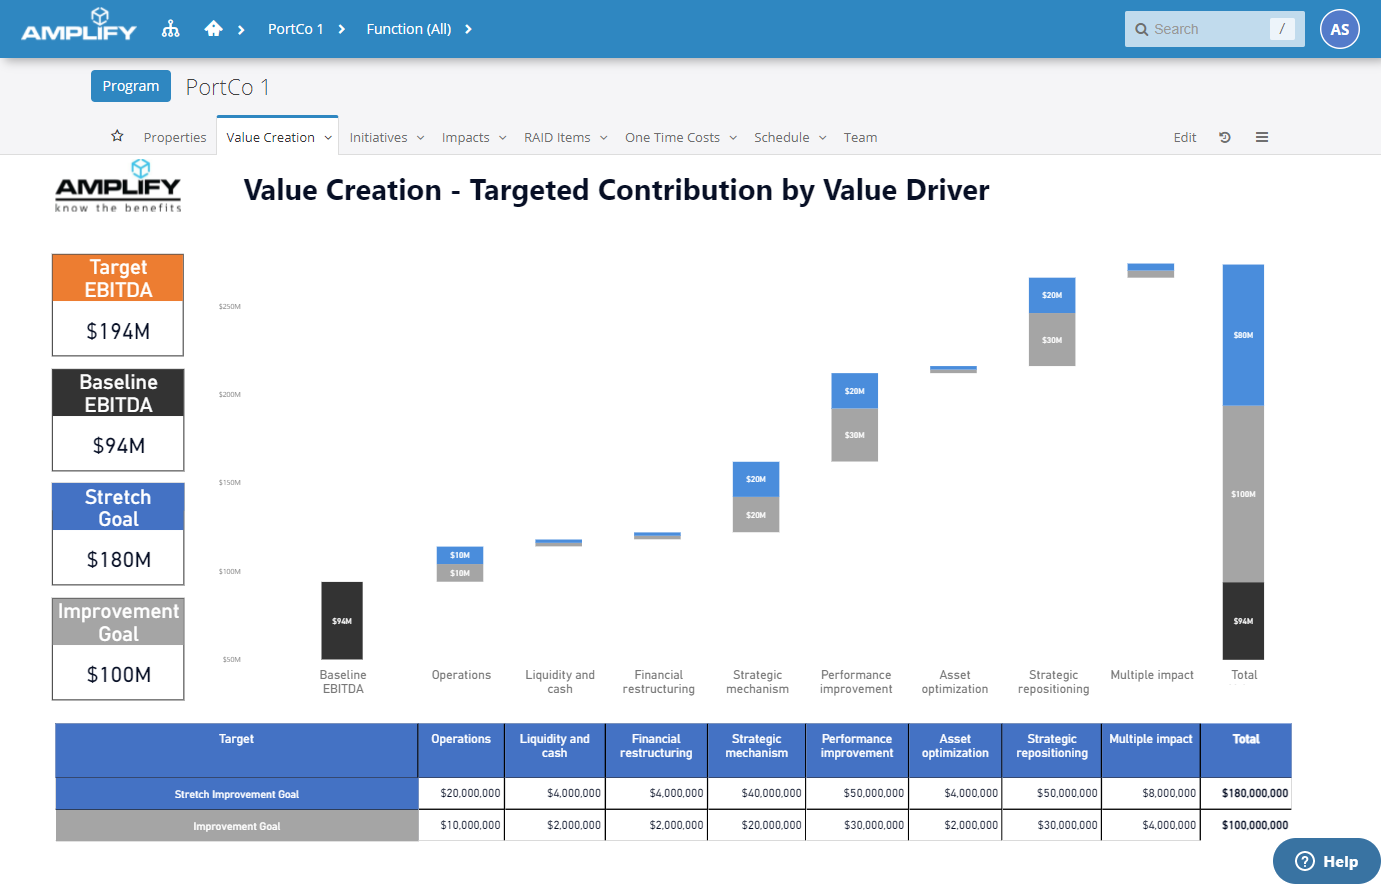 Amplify Strategy Execution screenshot: Amplify's flexible reporting provides stakeholders the insights they need to monitor performance and respond.